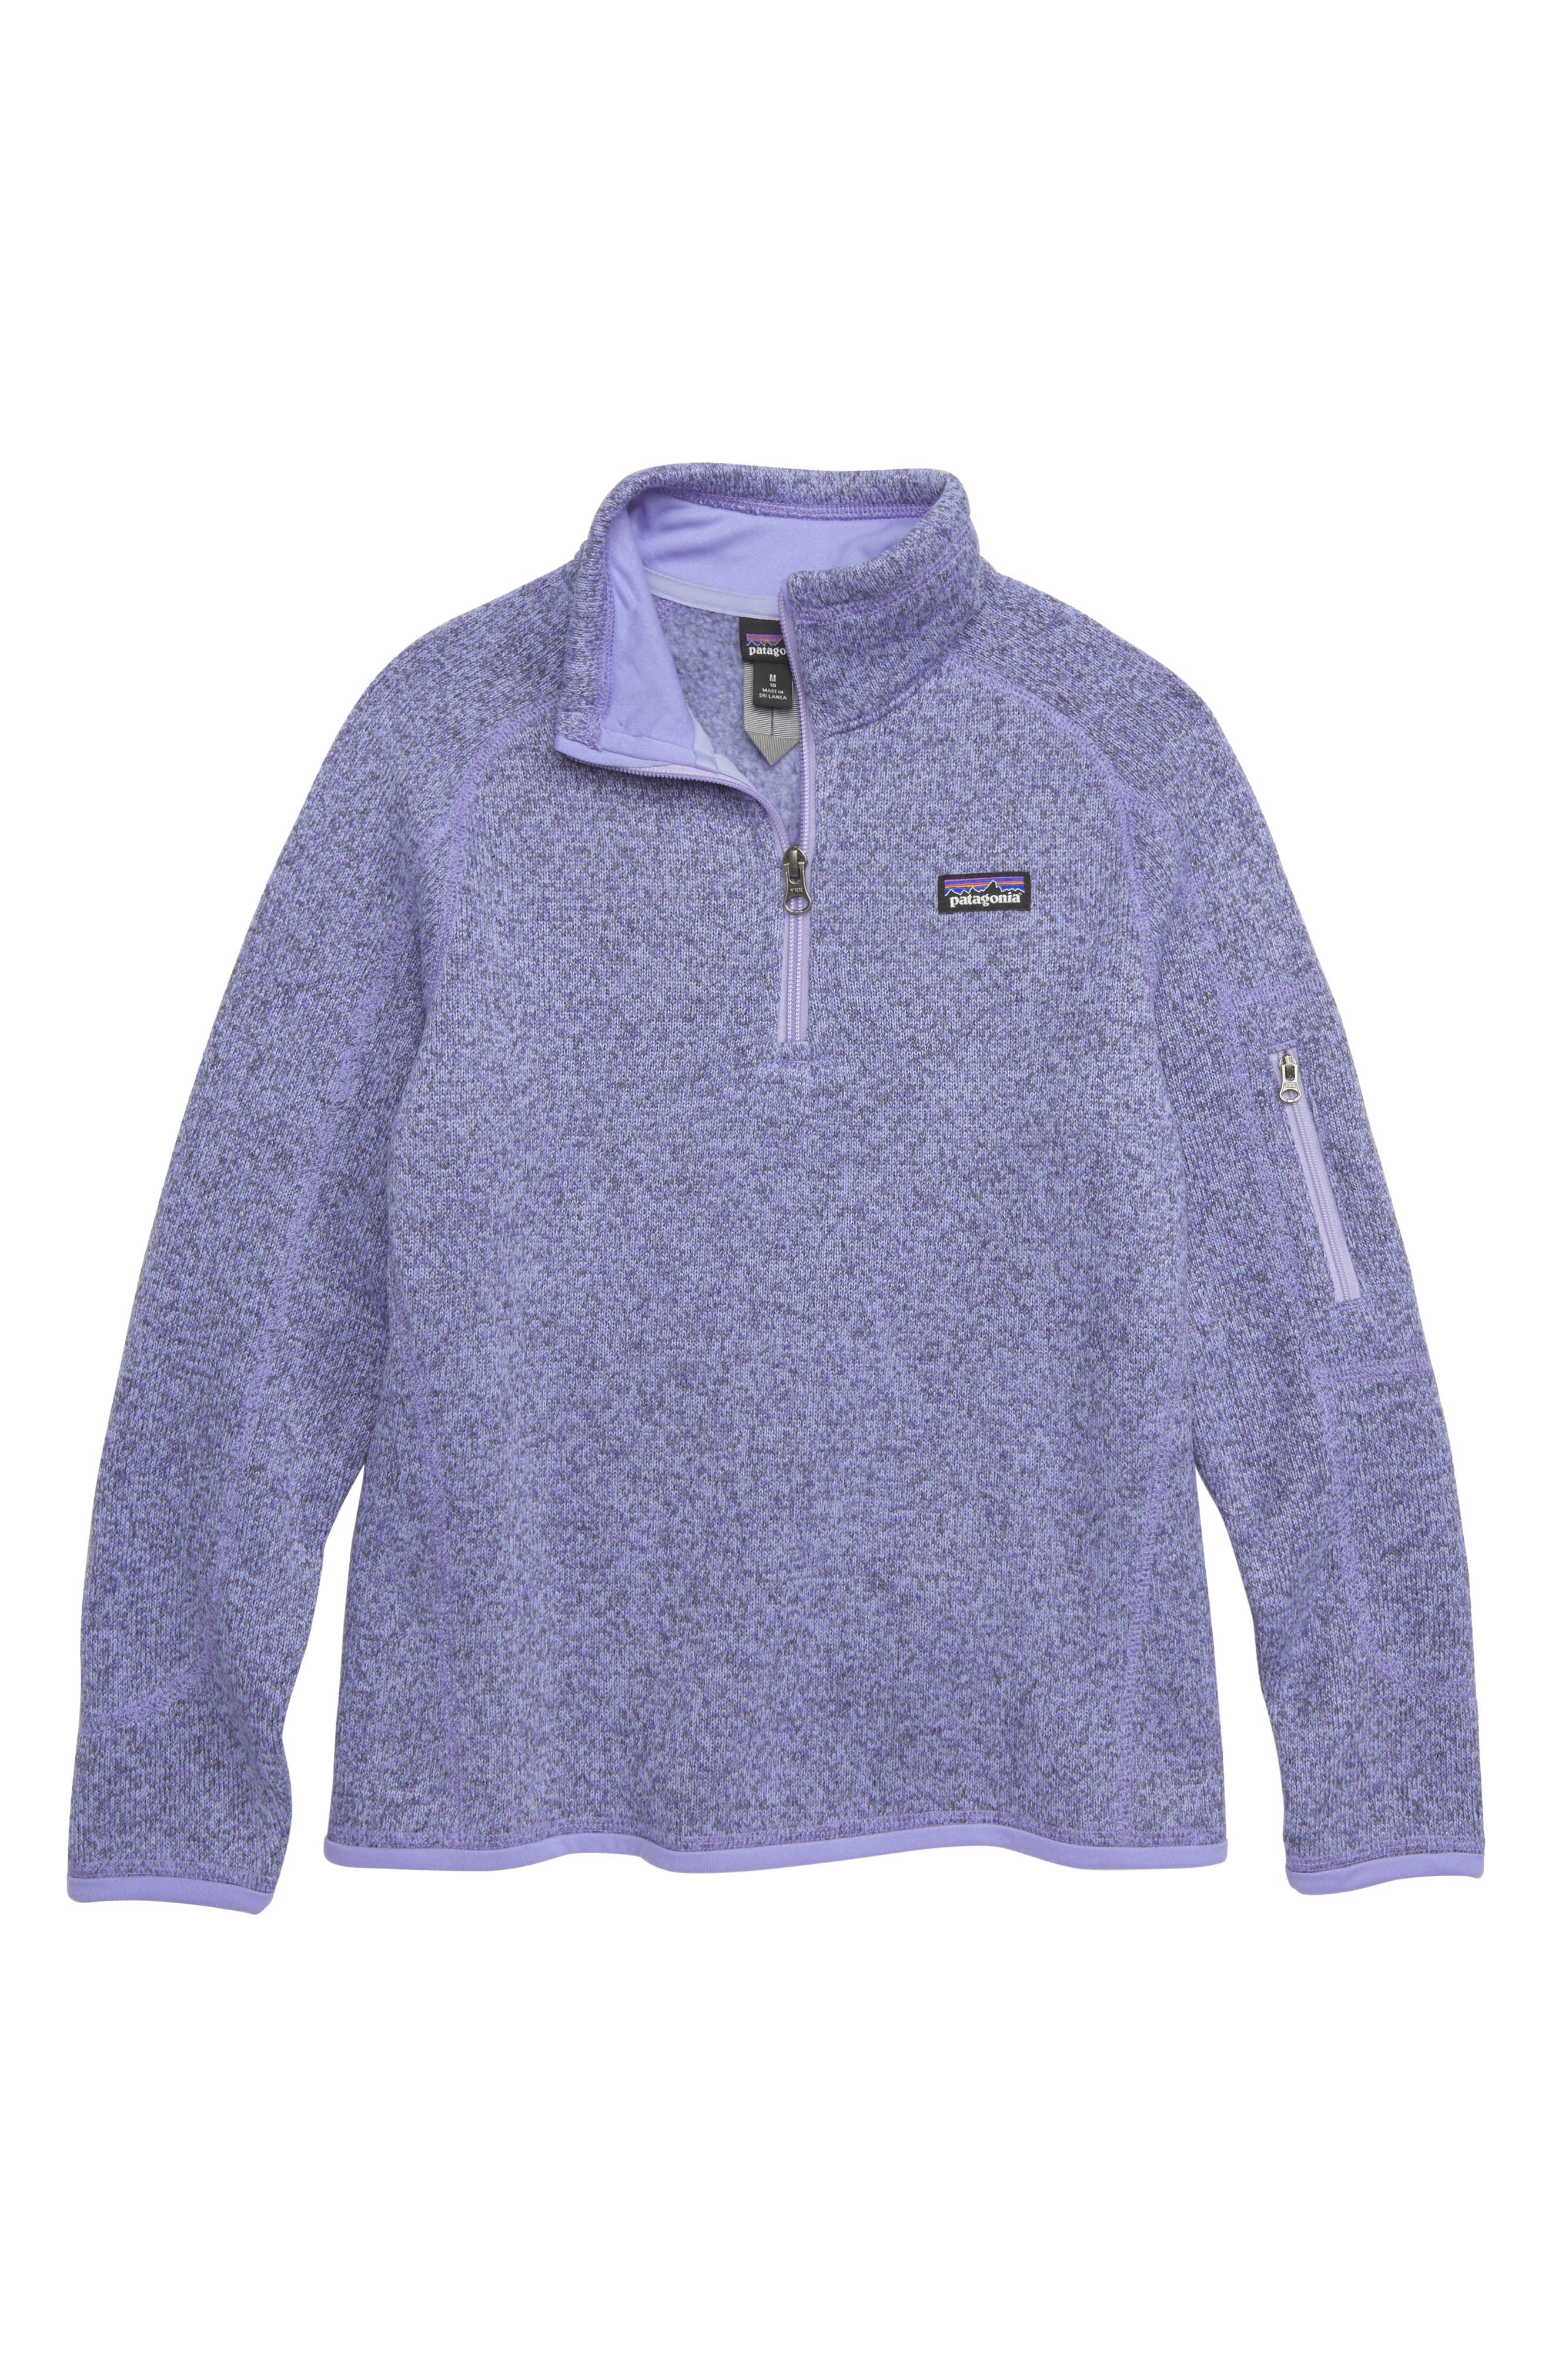 PATAGONIA, Better Sweater Quarter Zip Pullover, Main thumbnail 1, color, LVBL LIGHT VIOLET BLUE